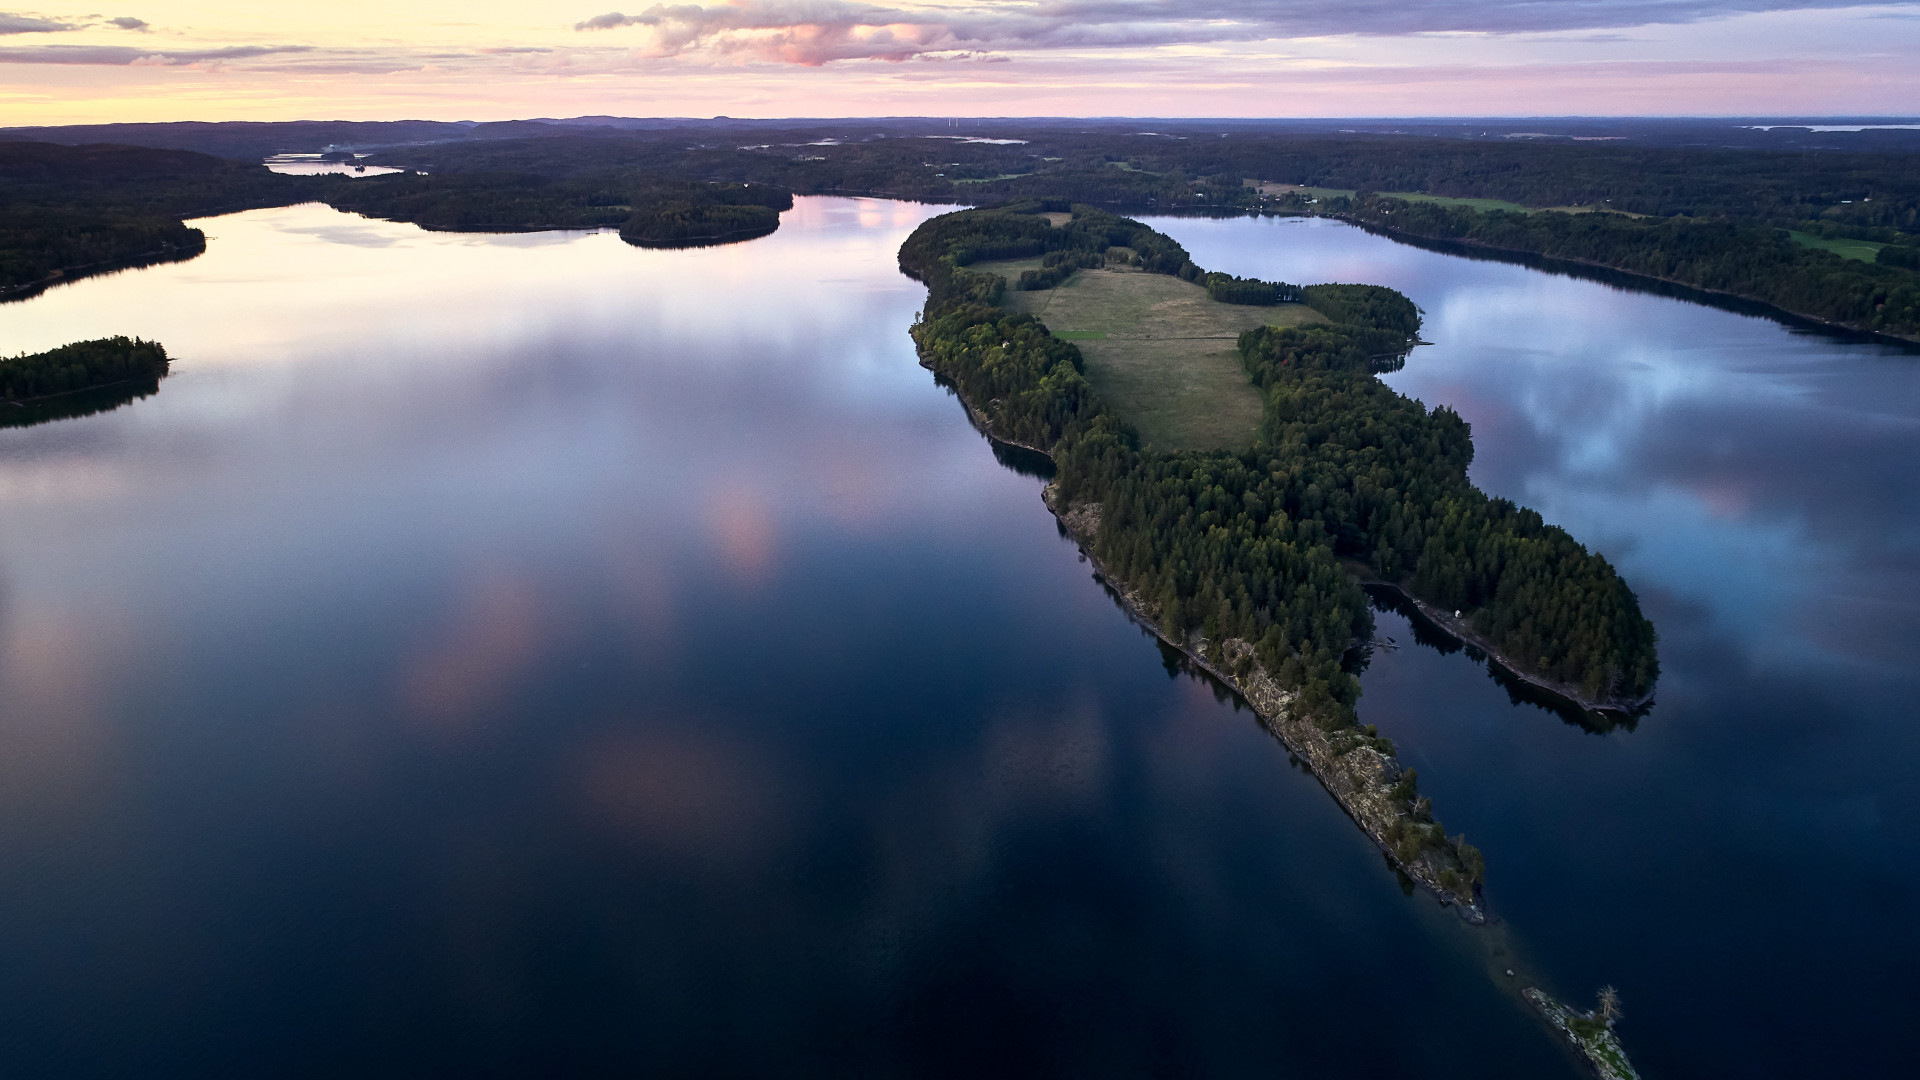 Henriksholm island from above